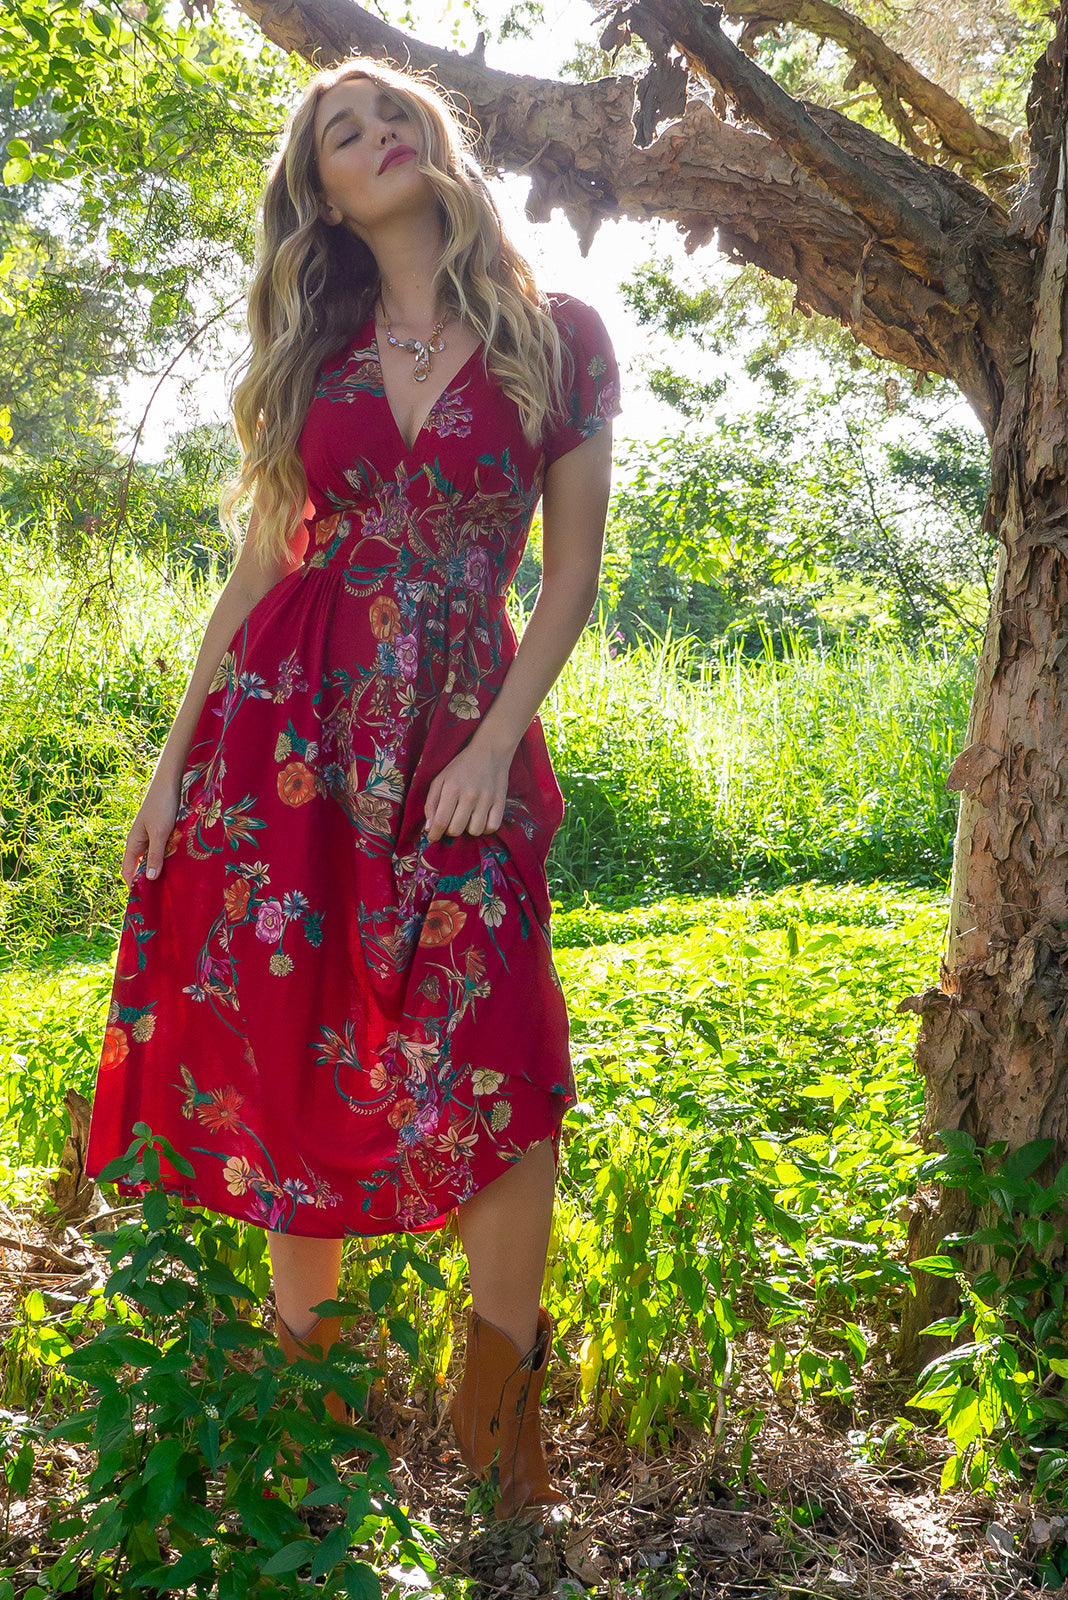 Lizzie Red Bouquet Midi dress features a vintage inspired fitted basque waist and elasticated waist with a cap sleeve and deep v neck the fabric is a soft woven rayon in a bright red bouquet floral print